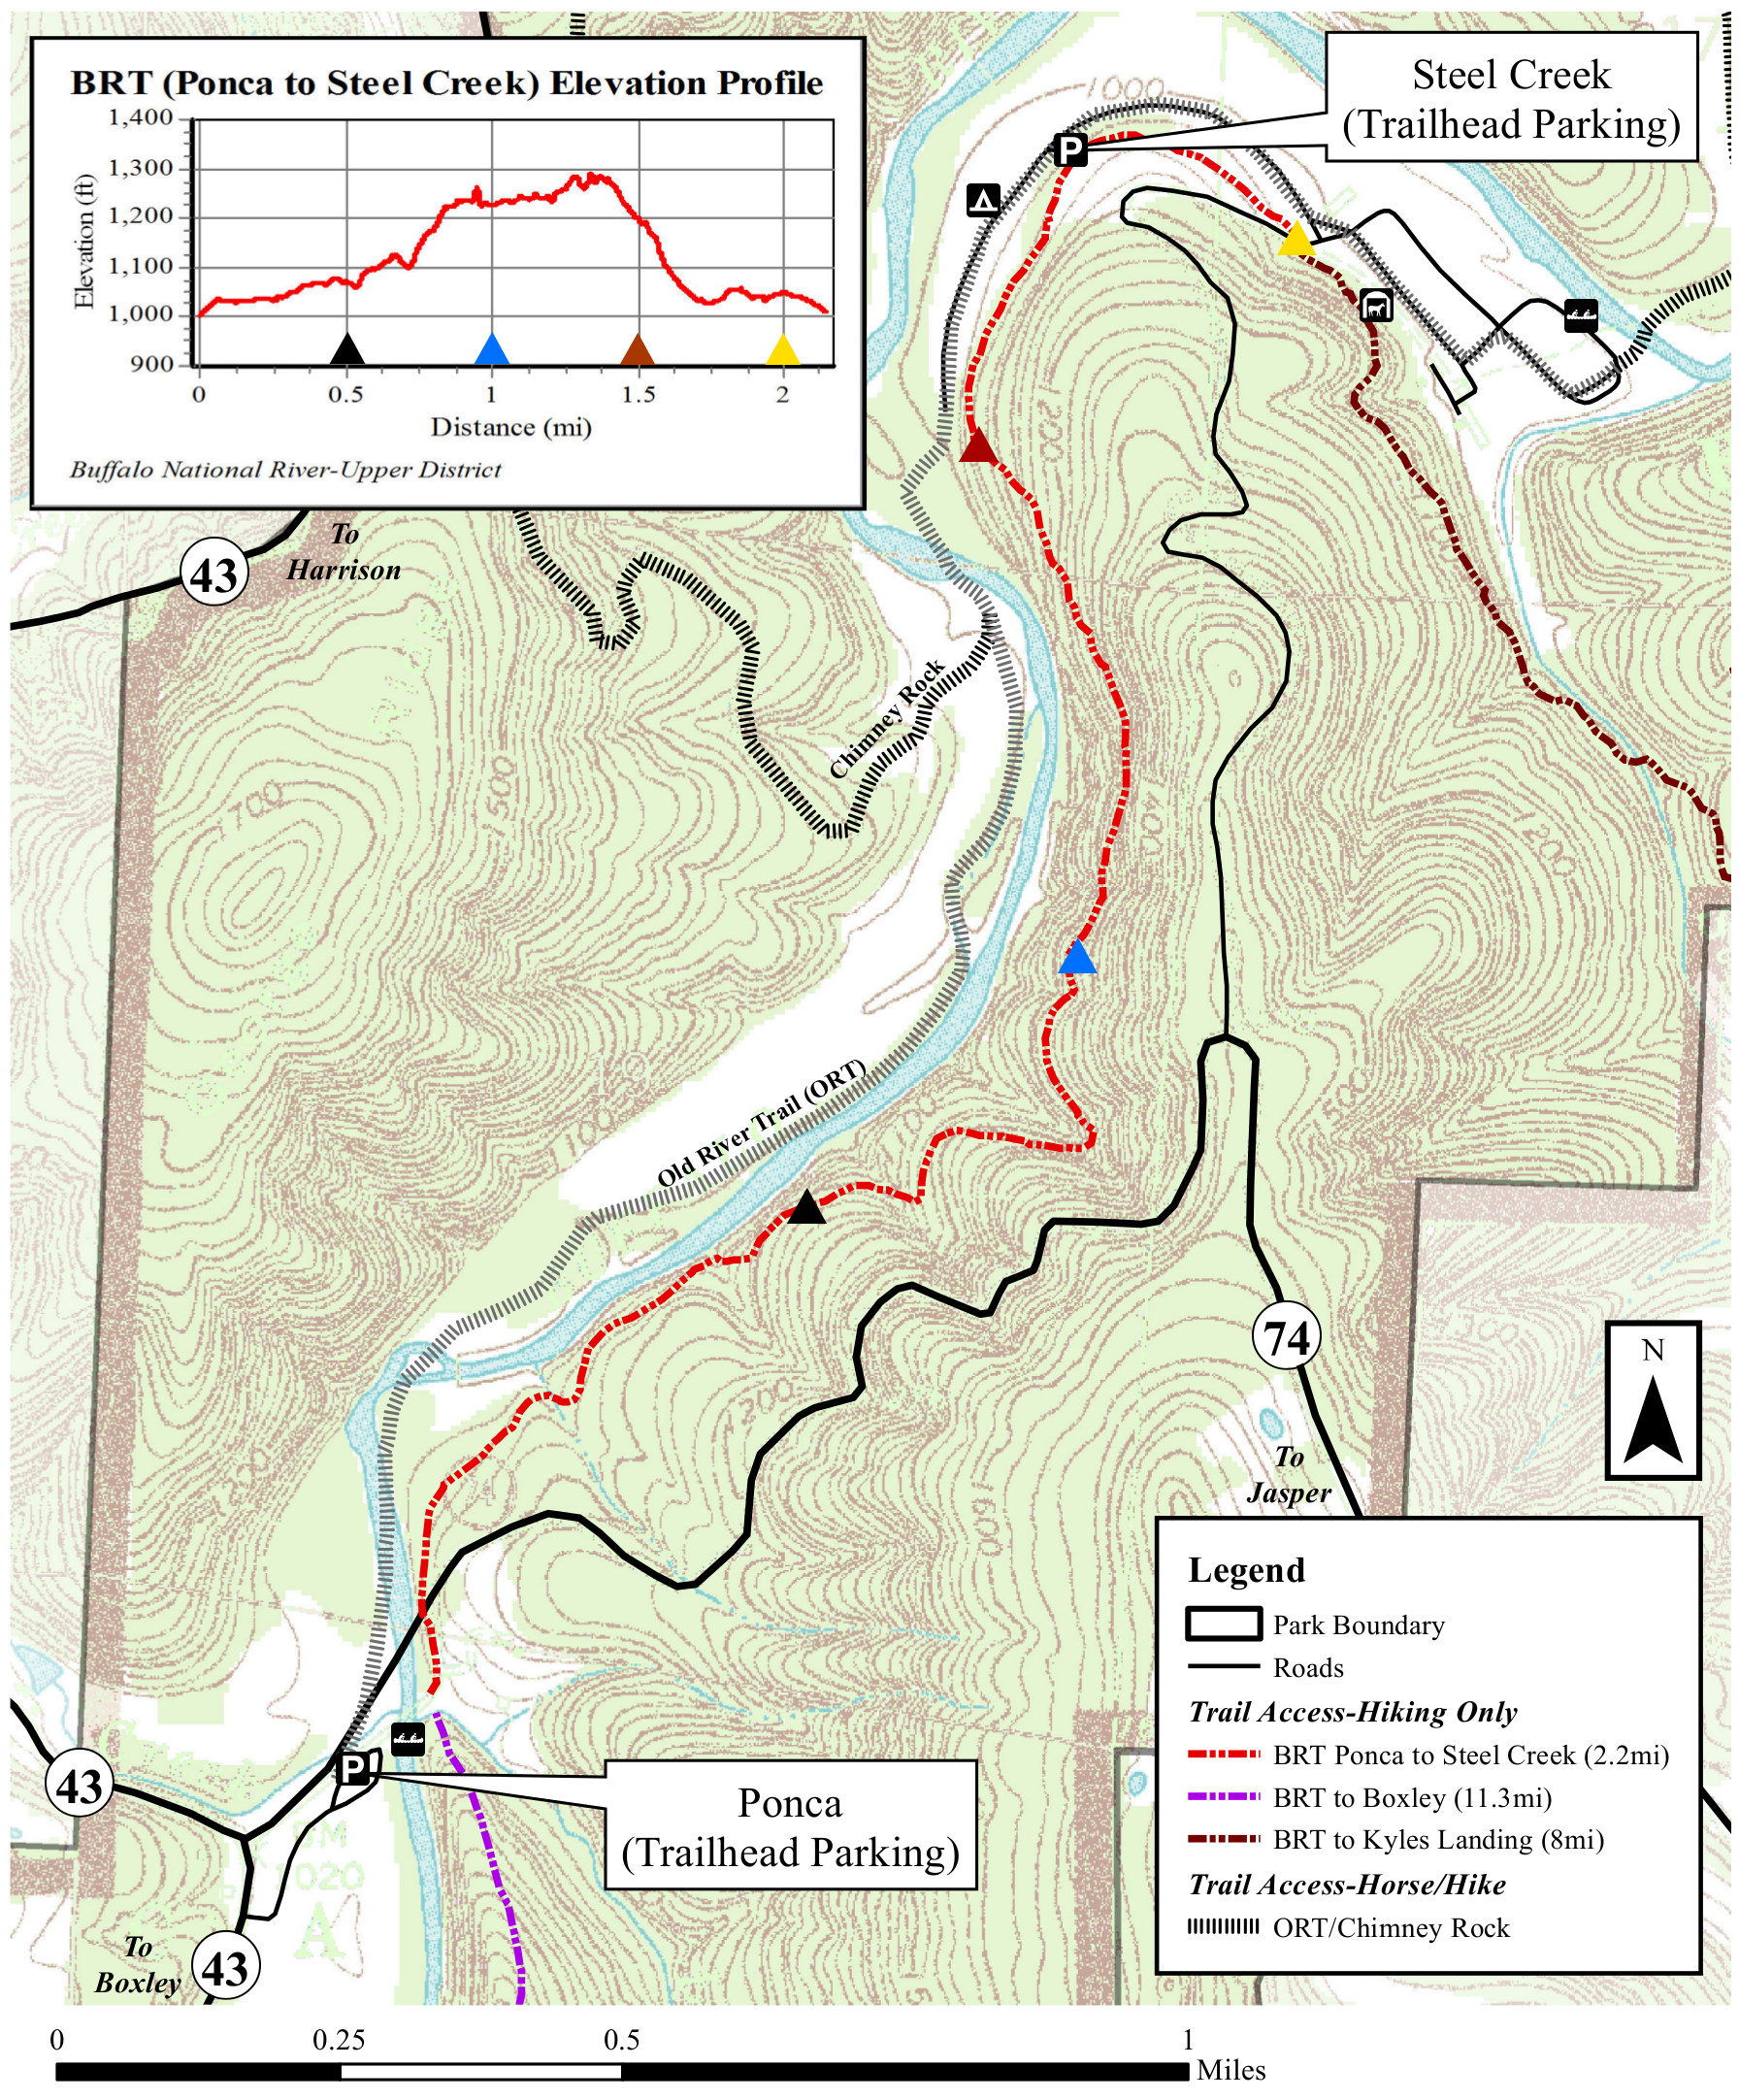 buffalo river trail map ponca to steel creek. buffalo river maps  npmapscom  just free maps period